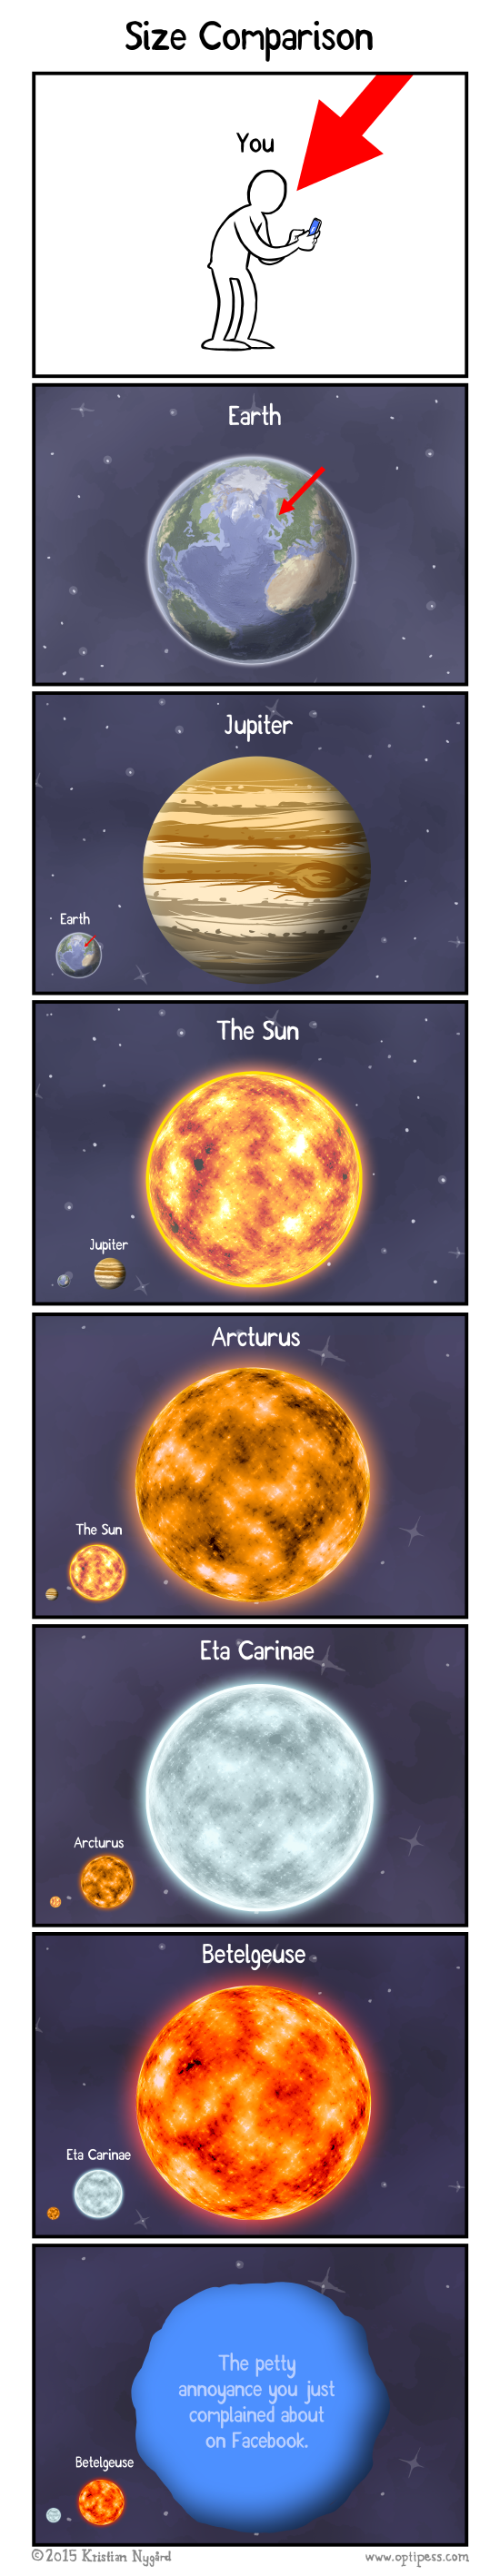 Of course, your issue is NOT bigger than Vy Canis Majoris. You're not THAT self-obsessed!